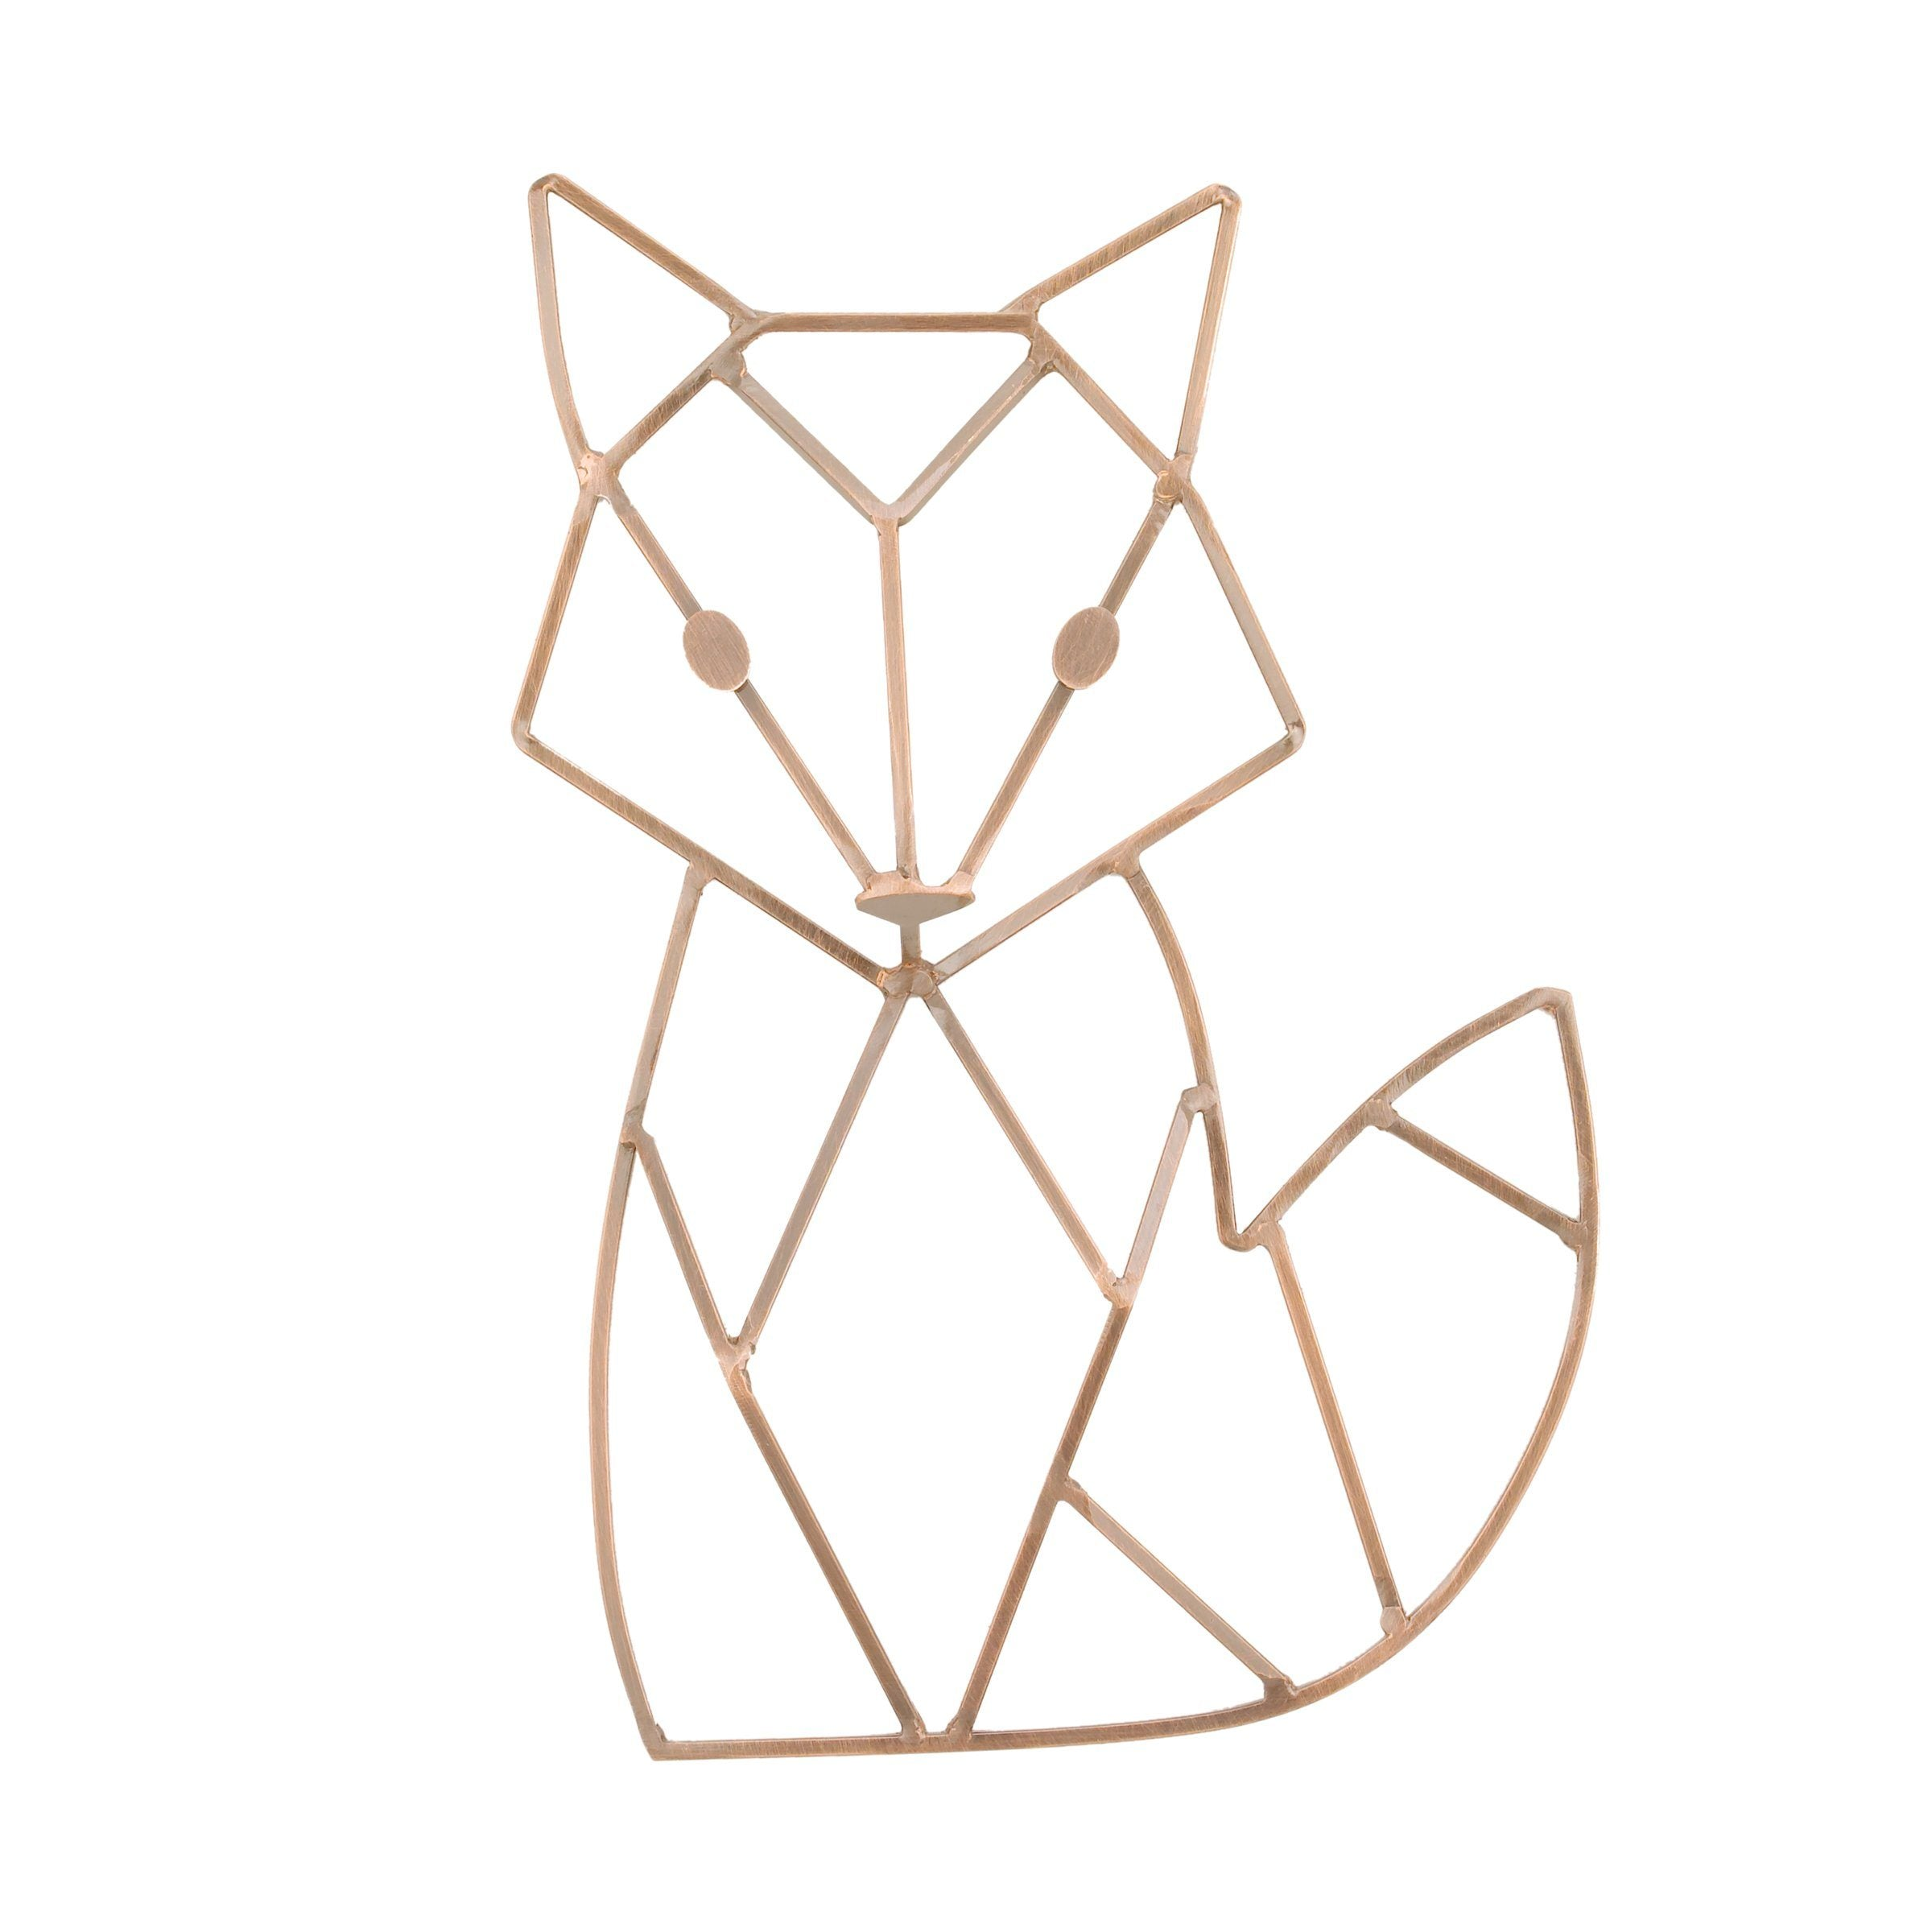 Copper Finish Fox-Shaped Wire Nursery Wall Decor - Project Nursery